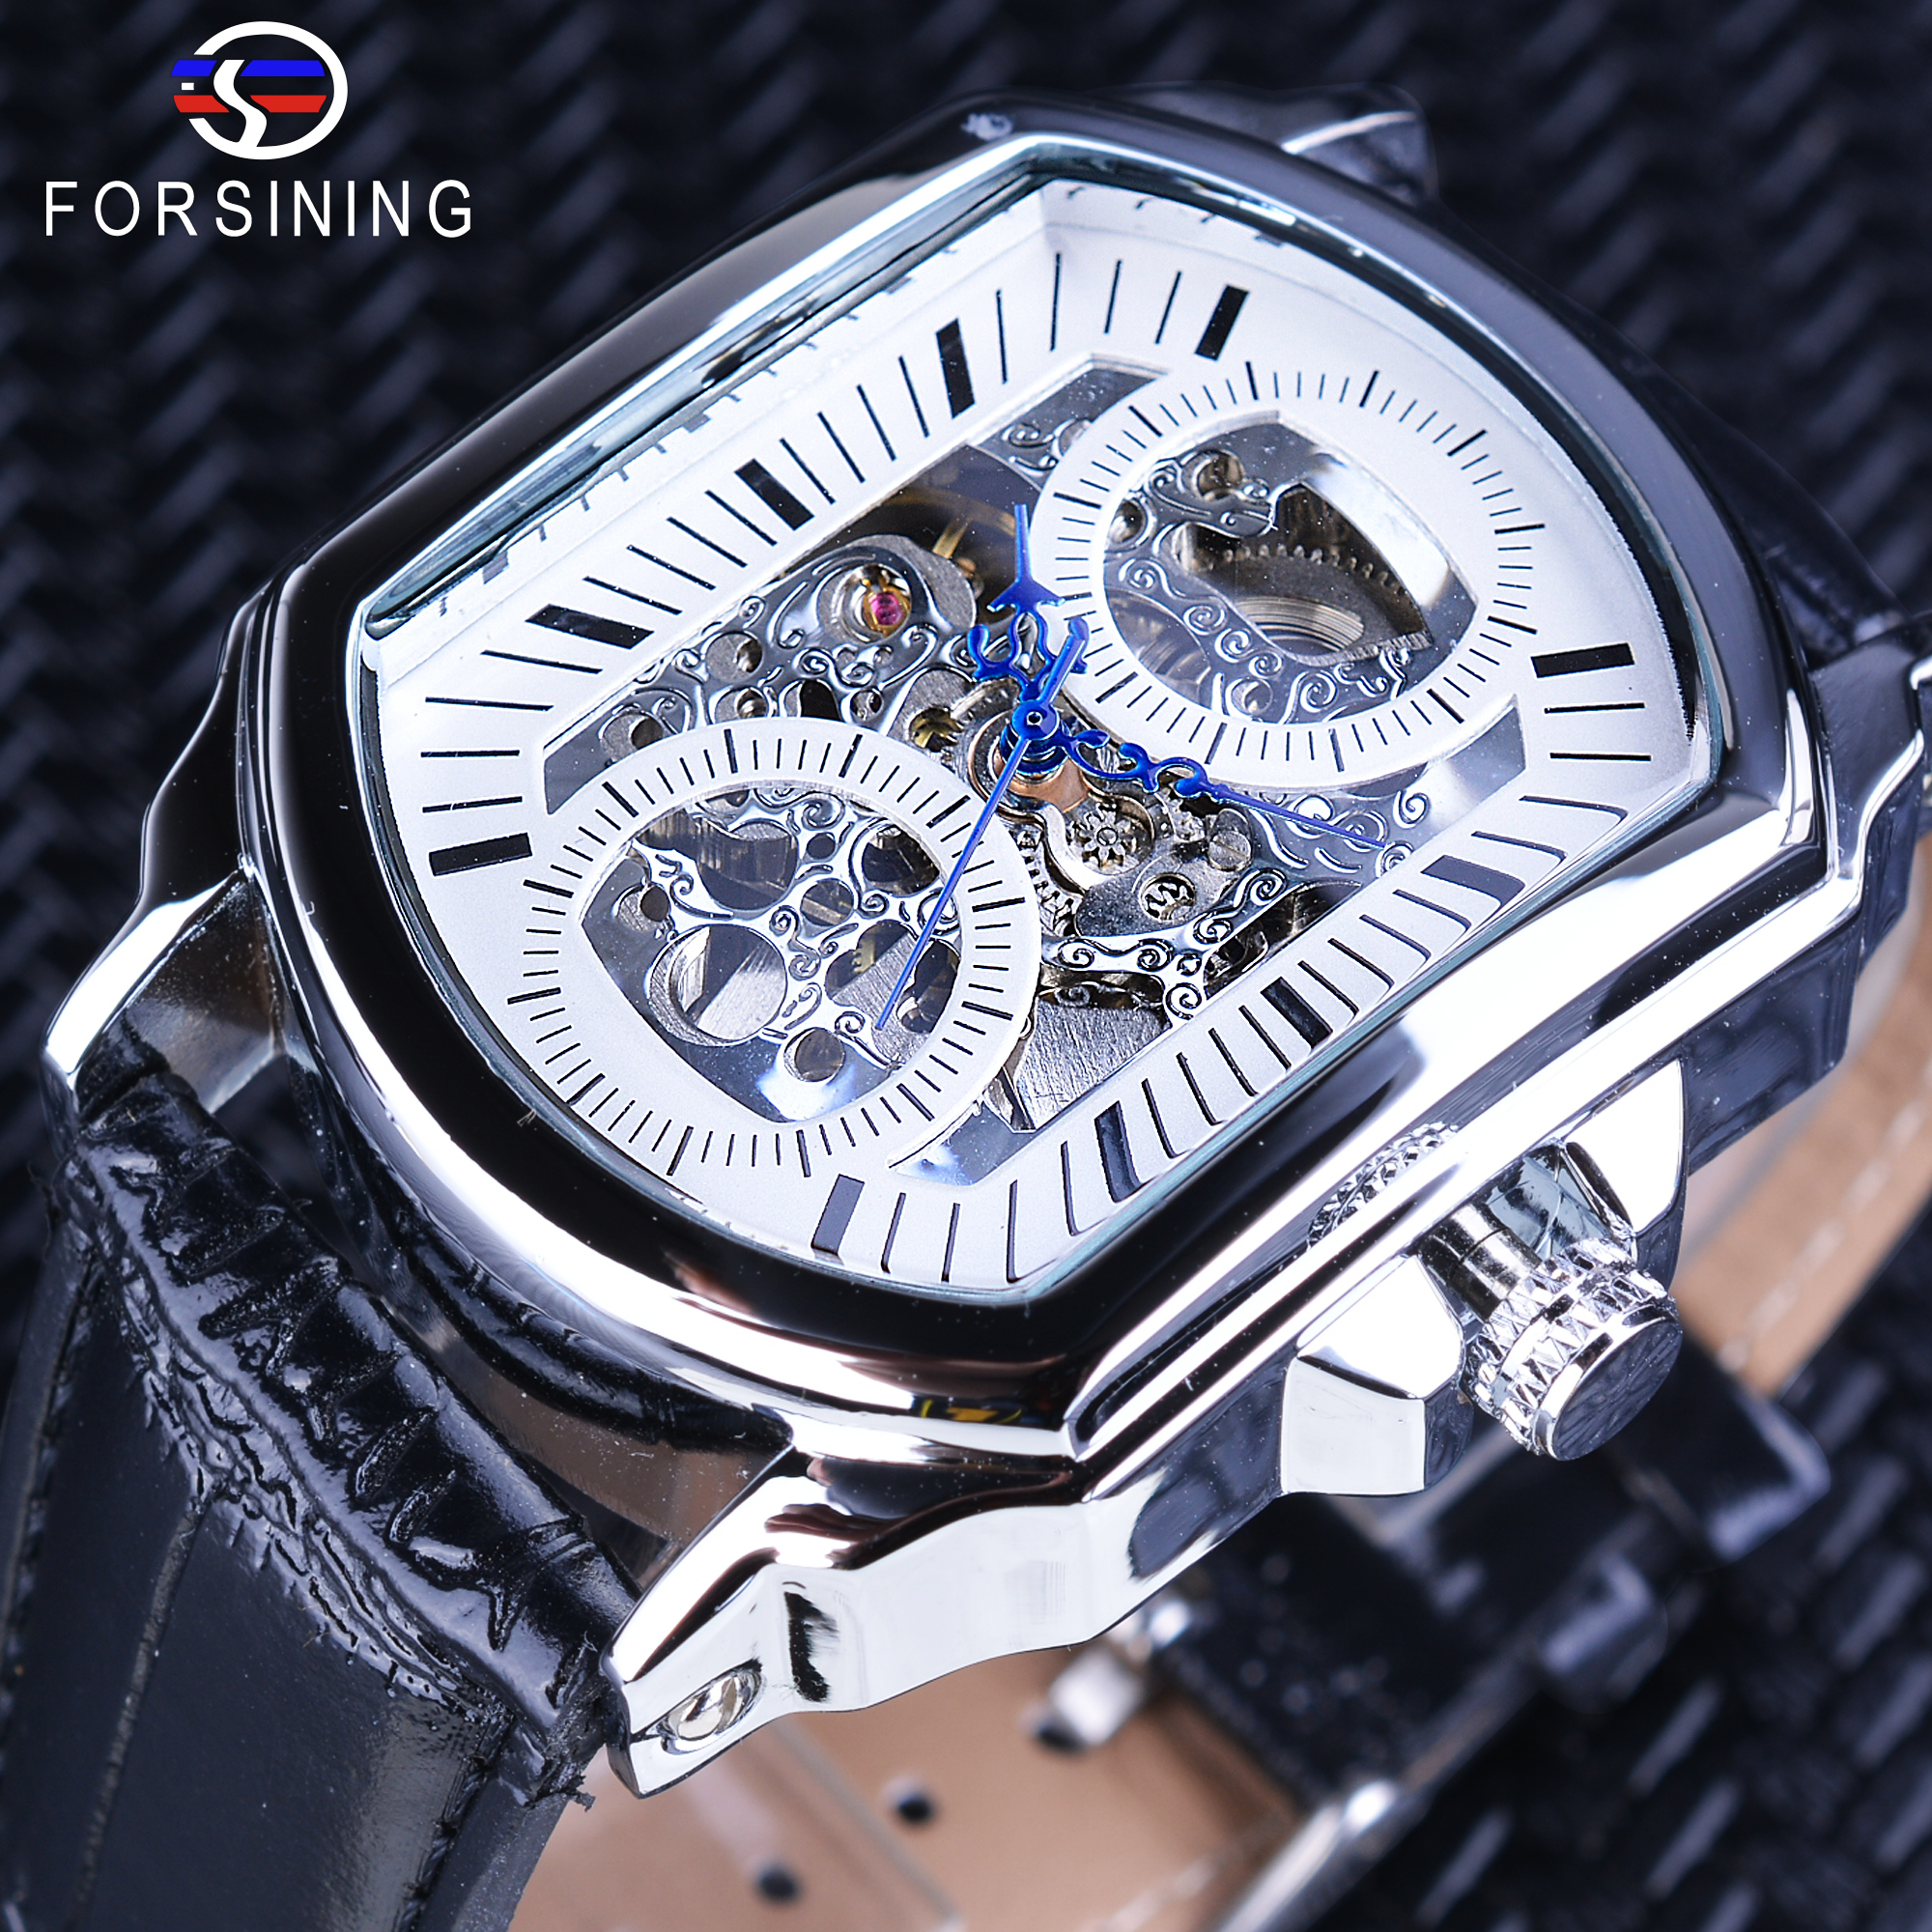 world reverso luxury of the wholesale nice lecoultre hands jaeger squadra blog wristrecto complexity buy on fashion watches mechanical chronograph swiss